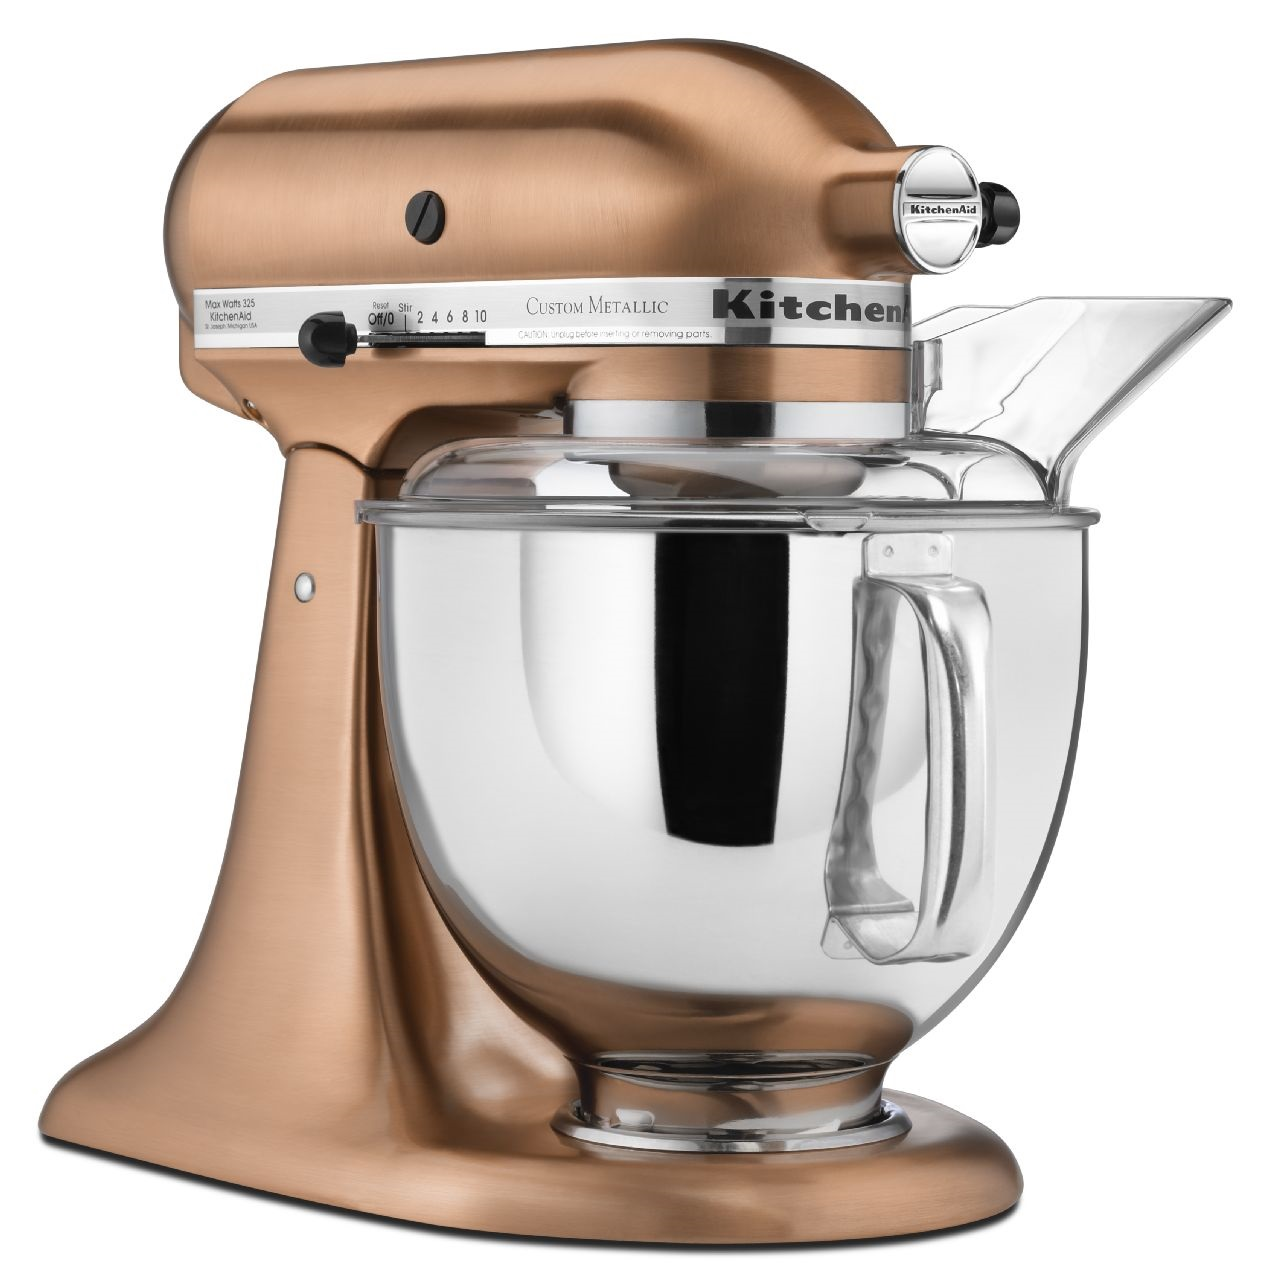 KitchenAid-Custom-Metallic-Series-5-Quart-Tilt-Head-Stand-Mixer-KSM152PS thumbnail 7